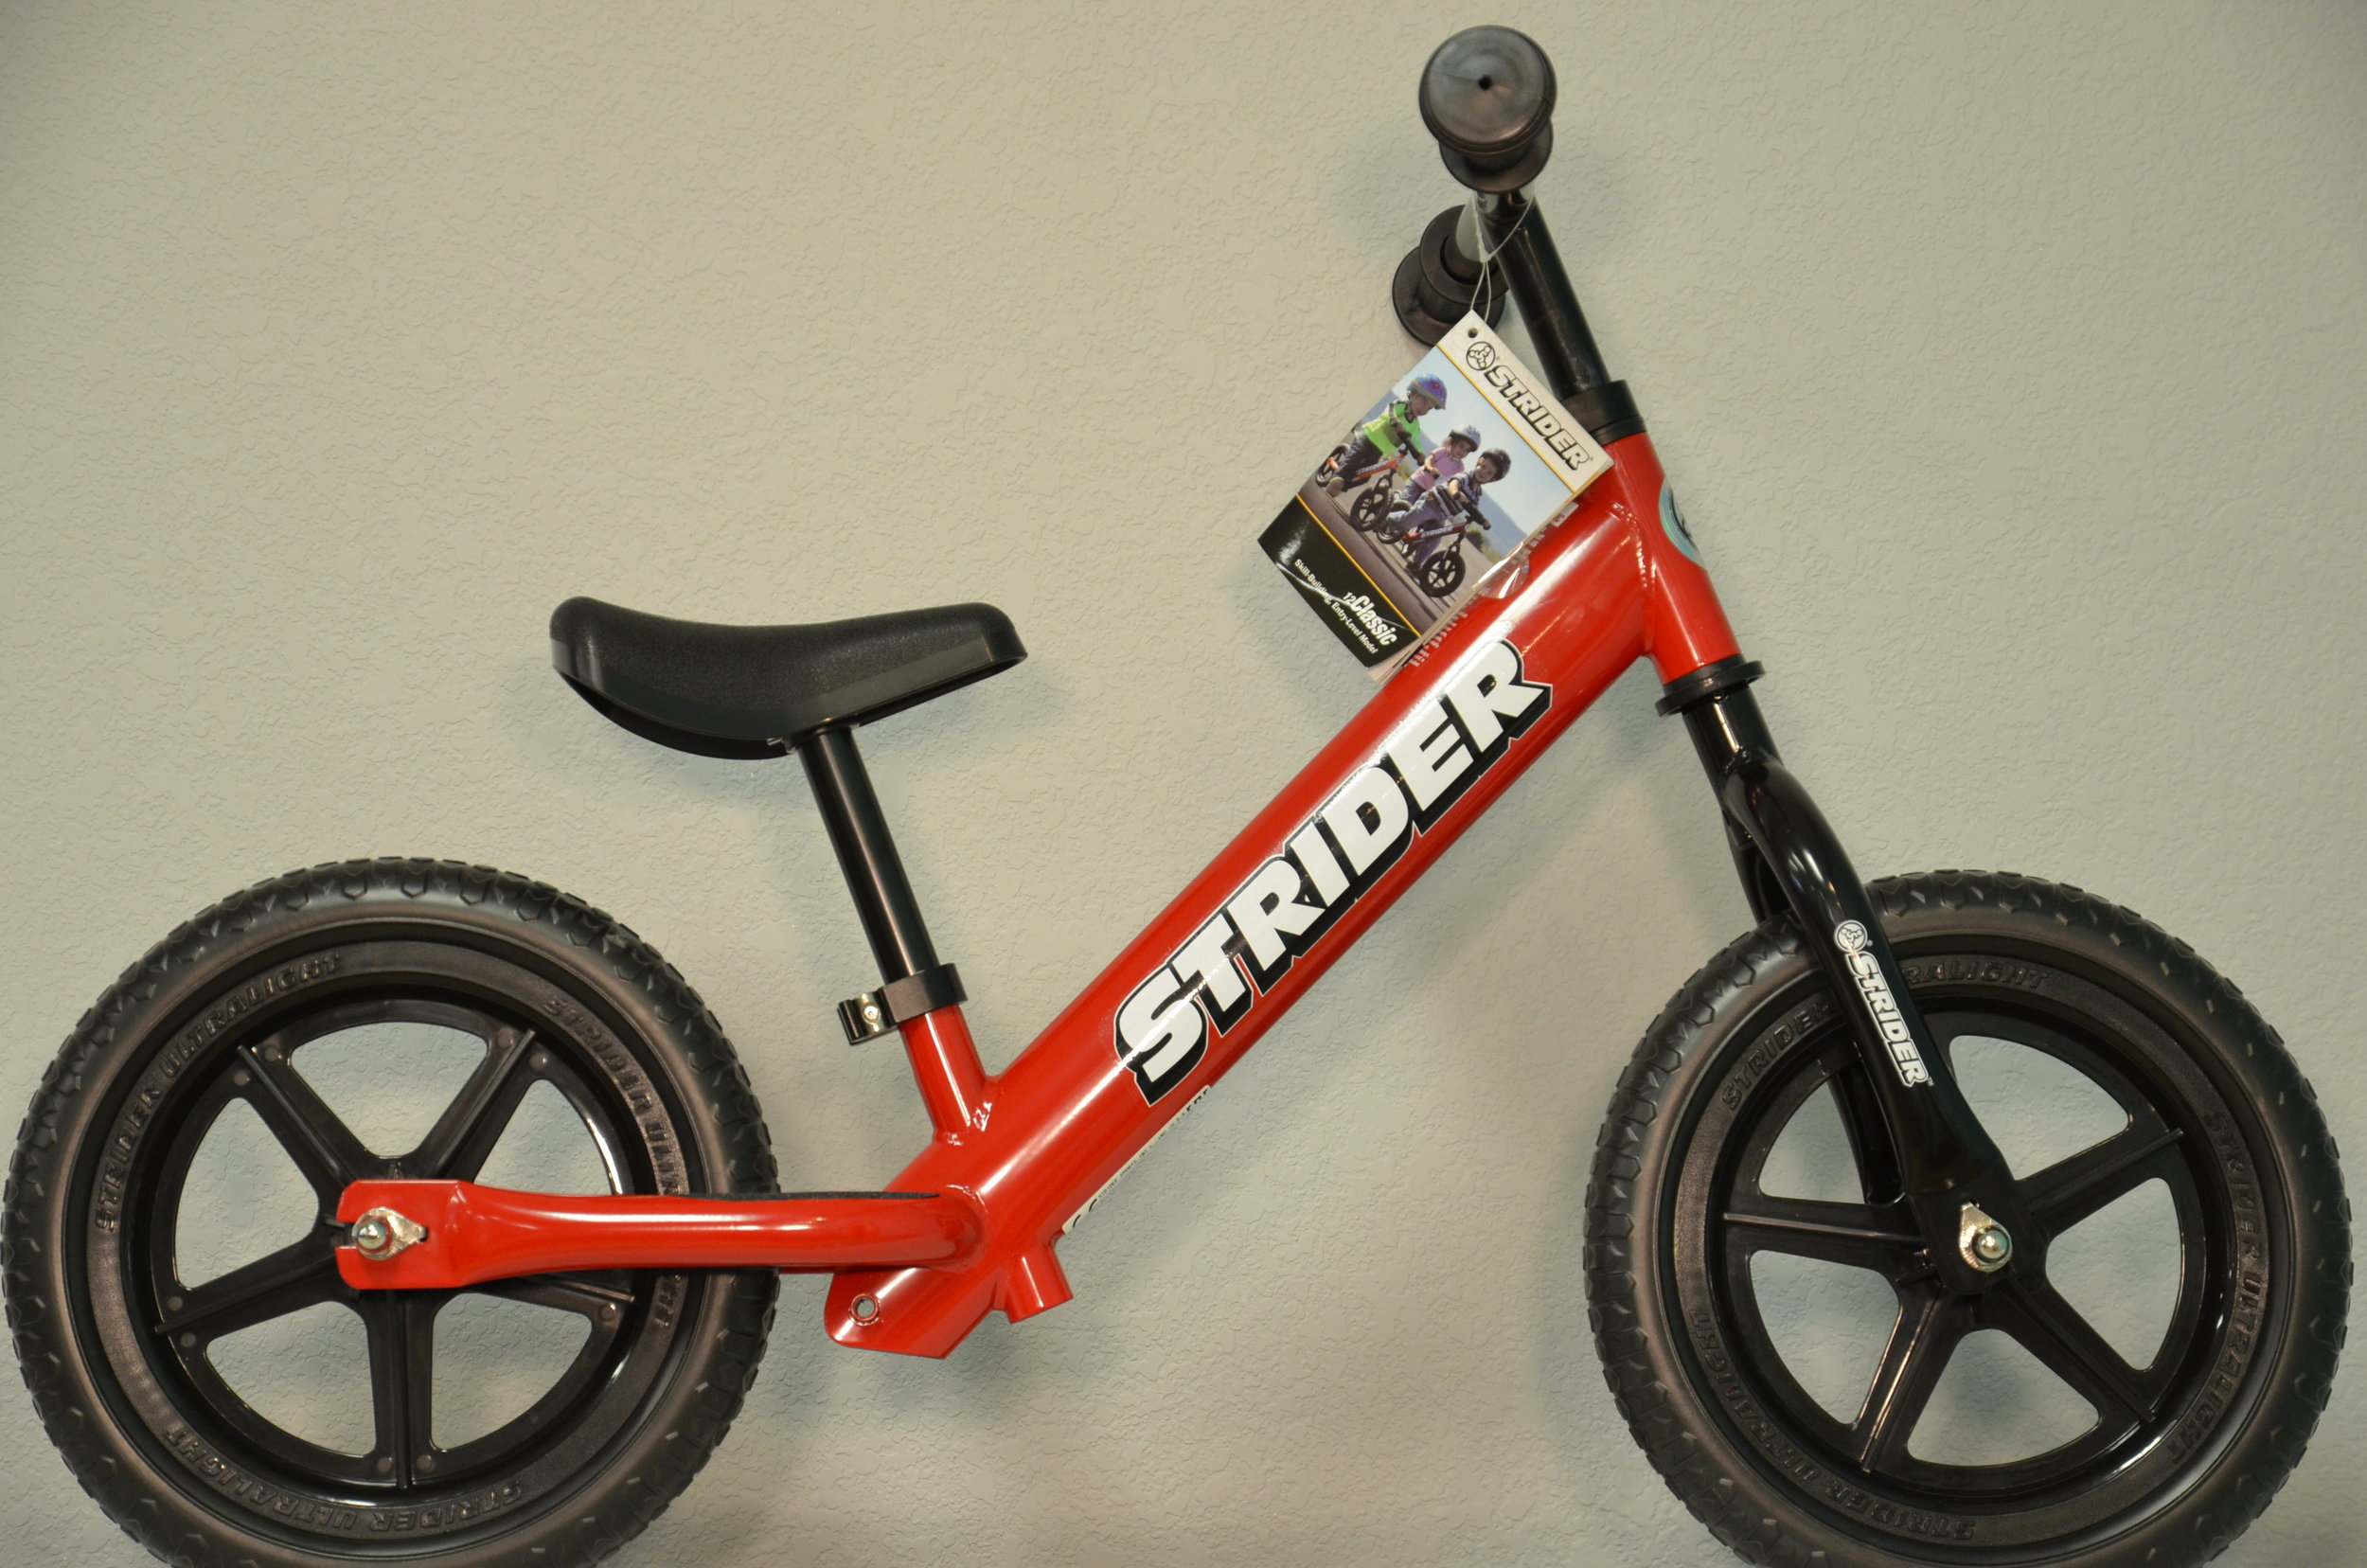 Strider Balance Bikes - The best way to learn to ride!